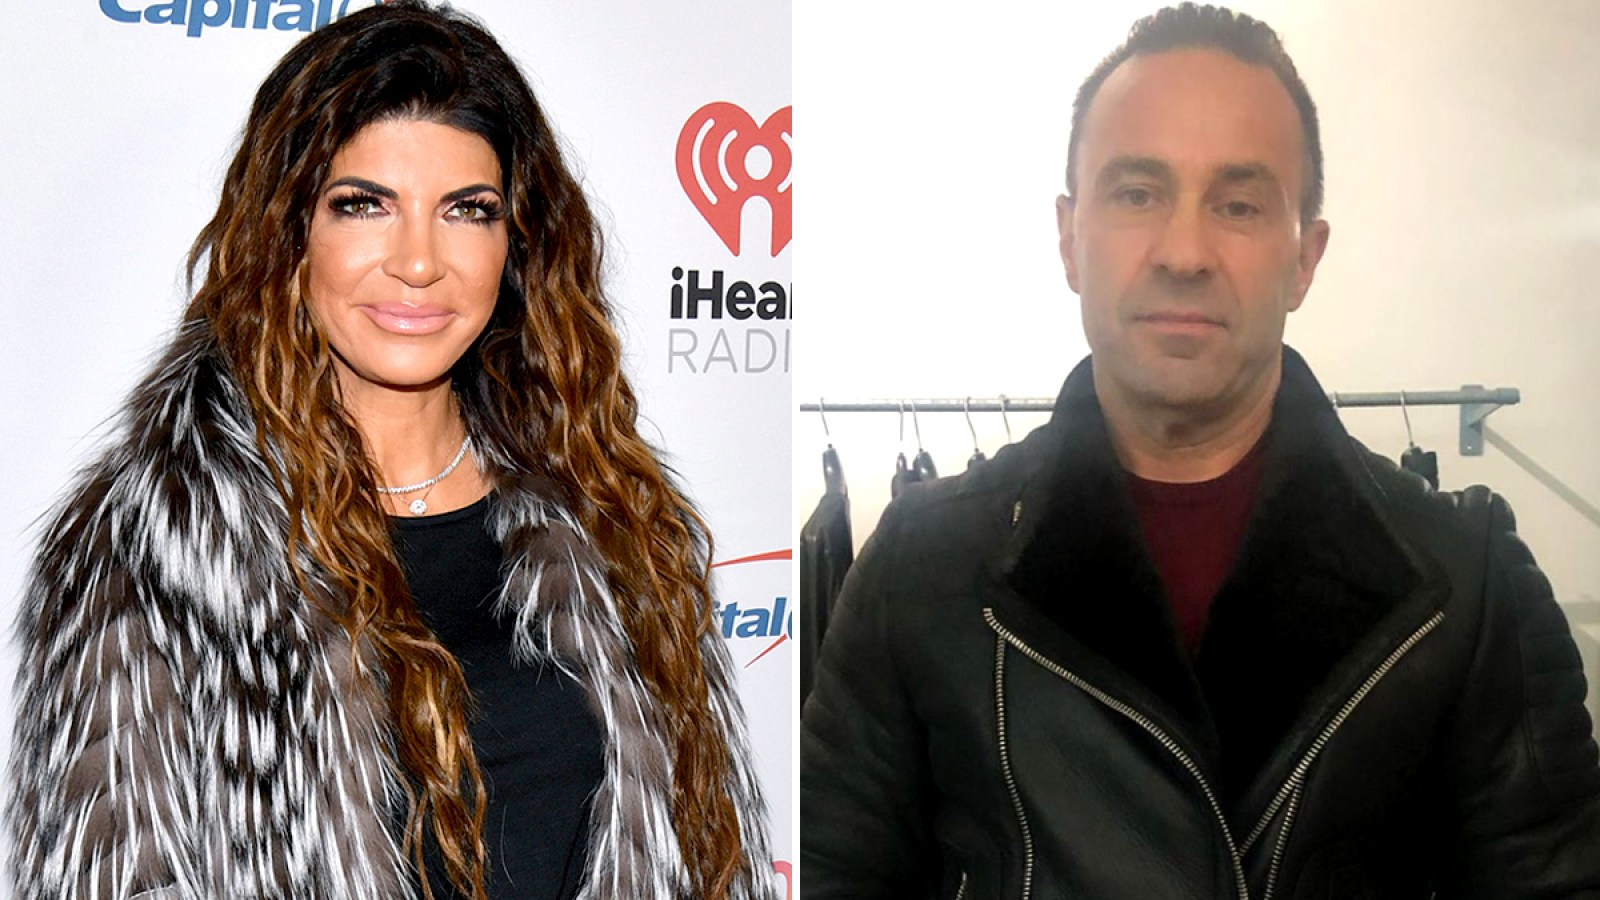 Teresa Giudice To Document Dating Life On Rhonj Season 11 Joe giudice was born in paterson, new jersey, united states on may 22nd 1972. teresa giudice to document dating life